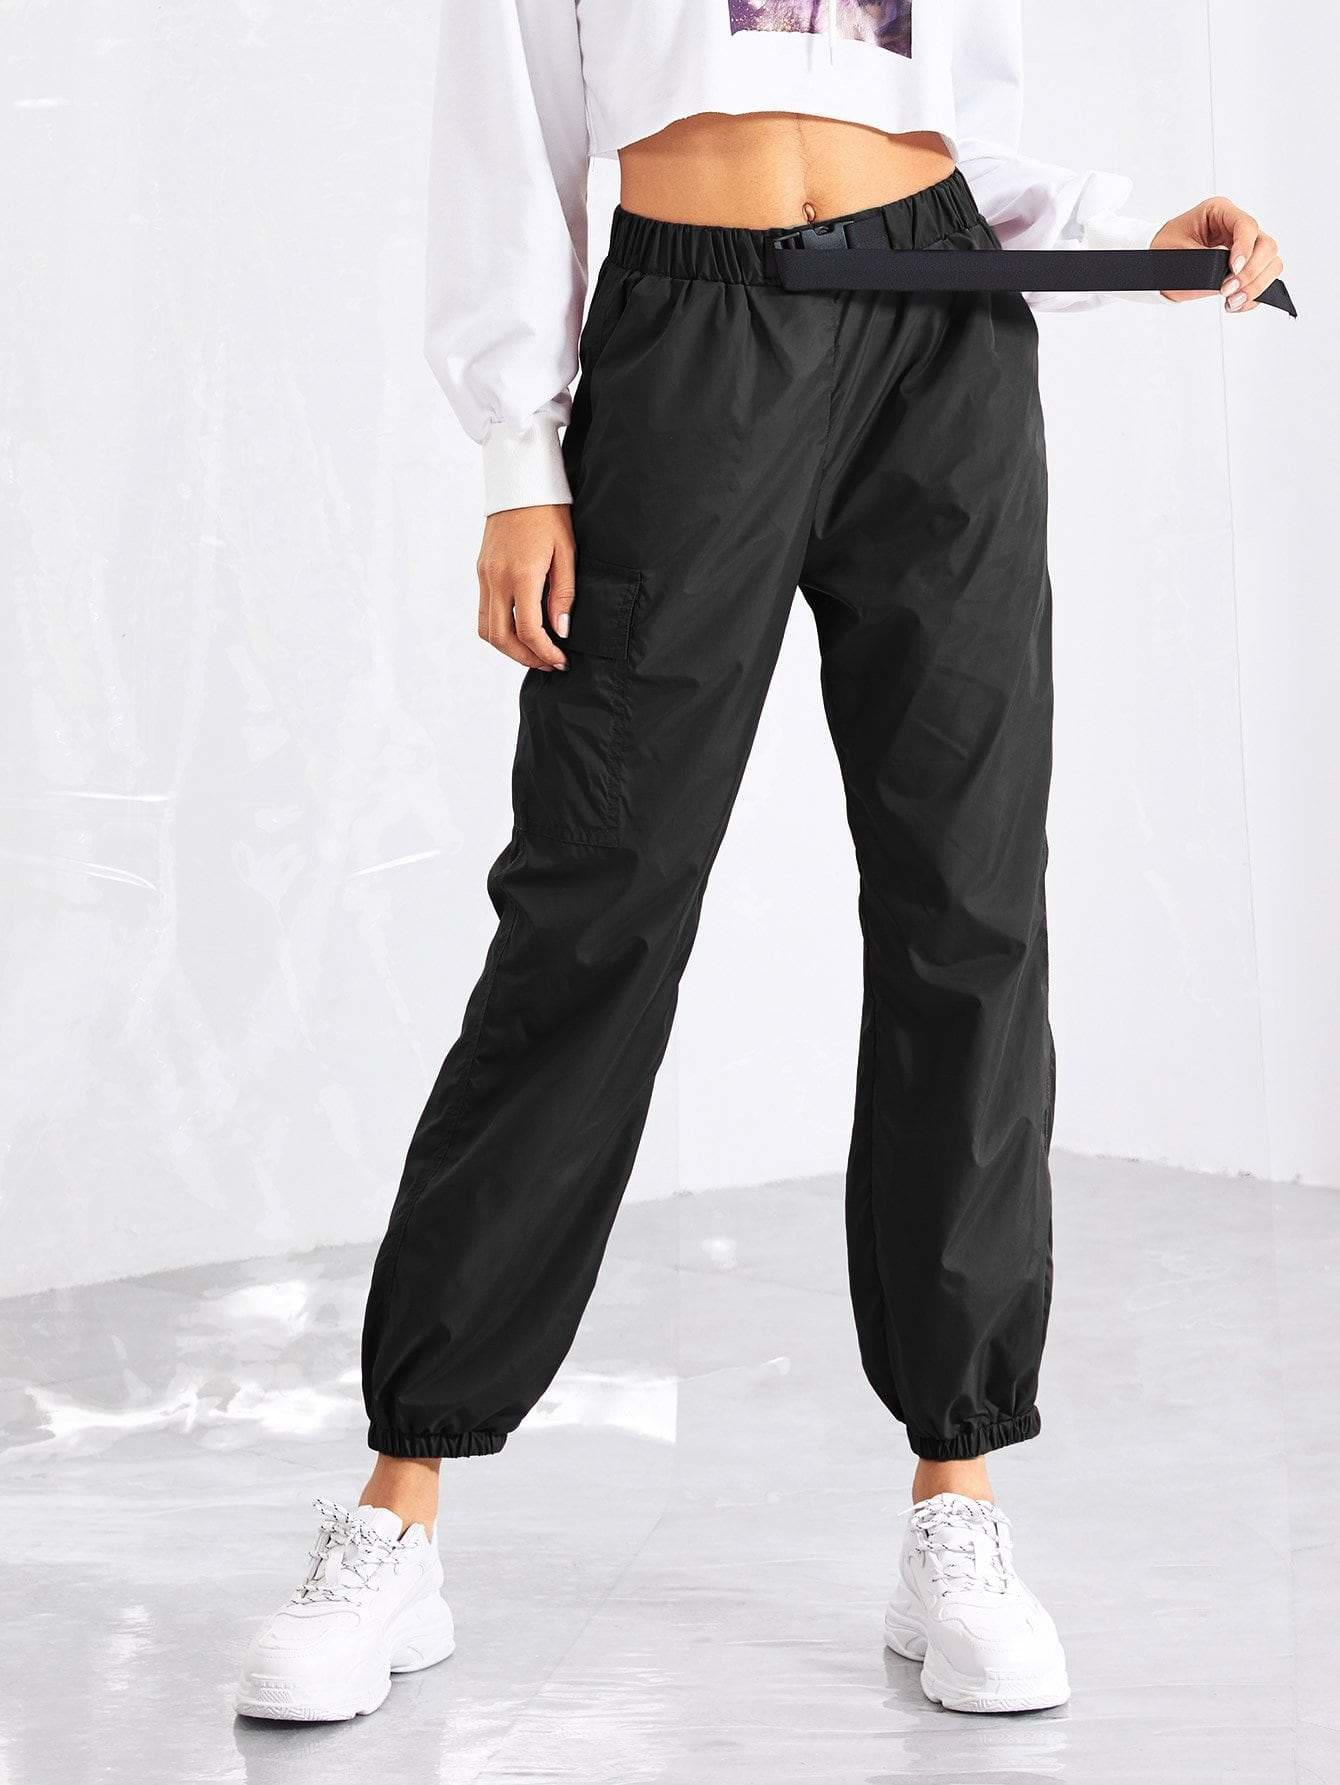 Pocket Side Drawstring Waist Utility Pants - Fittness Leggings